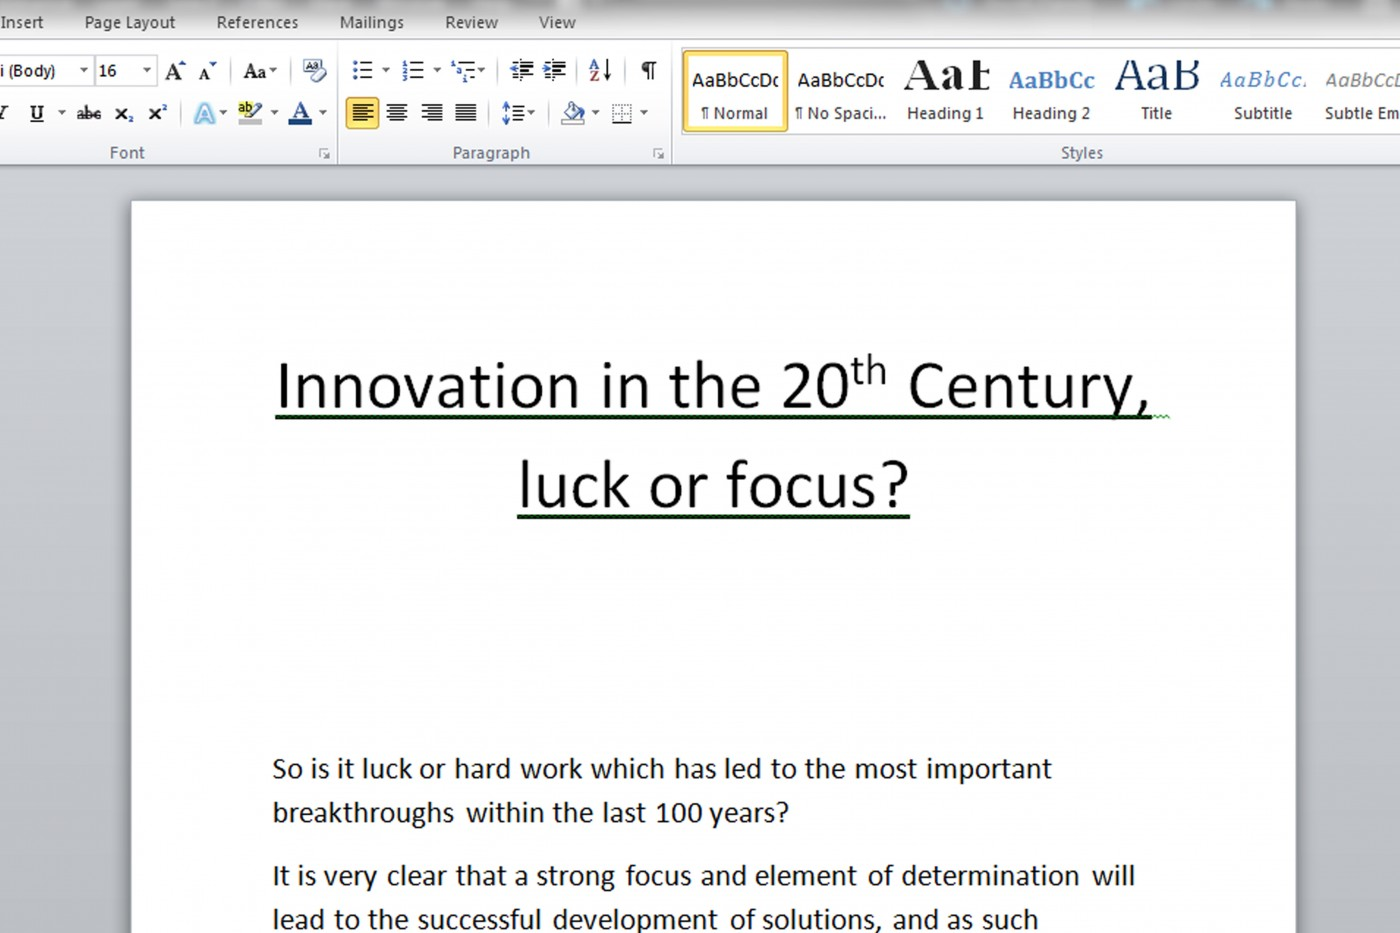 014 Write Term Paper Step Research Component Of Archaicawful Pdf Parts Chapter 1 1-5 1400